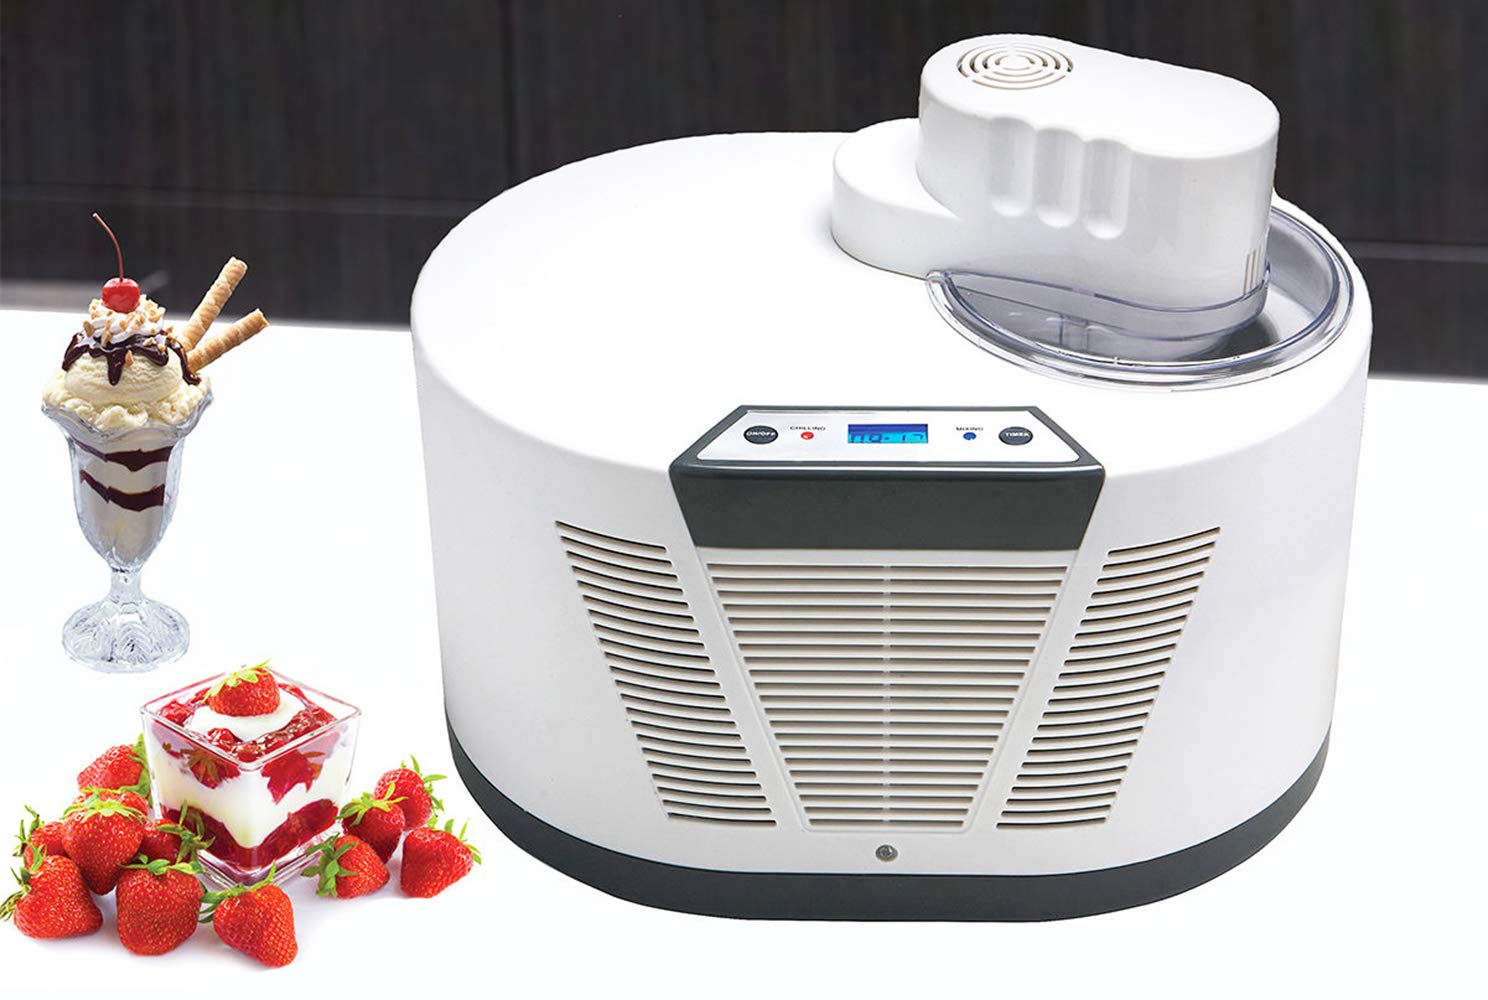 Hanchen Electric Automatic Homemade Ice Cream Machine Advanced Compressor Self-cooling Small Commercial Ice Cream Maker of 1100 ml Capacity for Kids Cuisinart 30min/pot 12 balls /pot with 3C certificate 220V Computer control